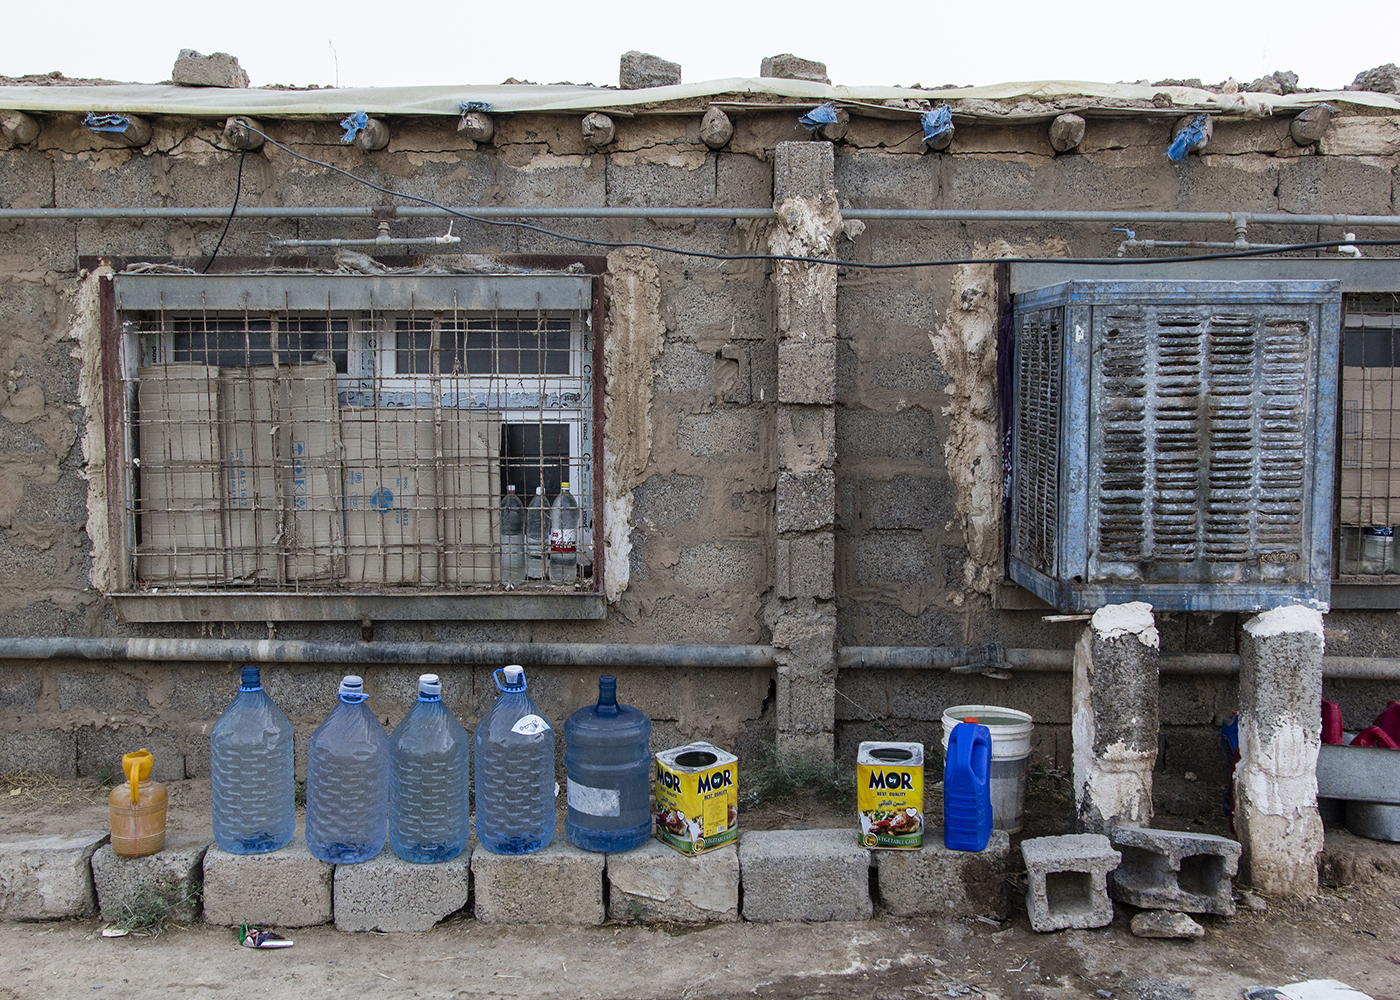 04/07/2015 -- Dibaga-Makhmur-, Iraq -- IDP people keep Some bottel's of water in front of there houses to take shower with.